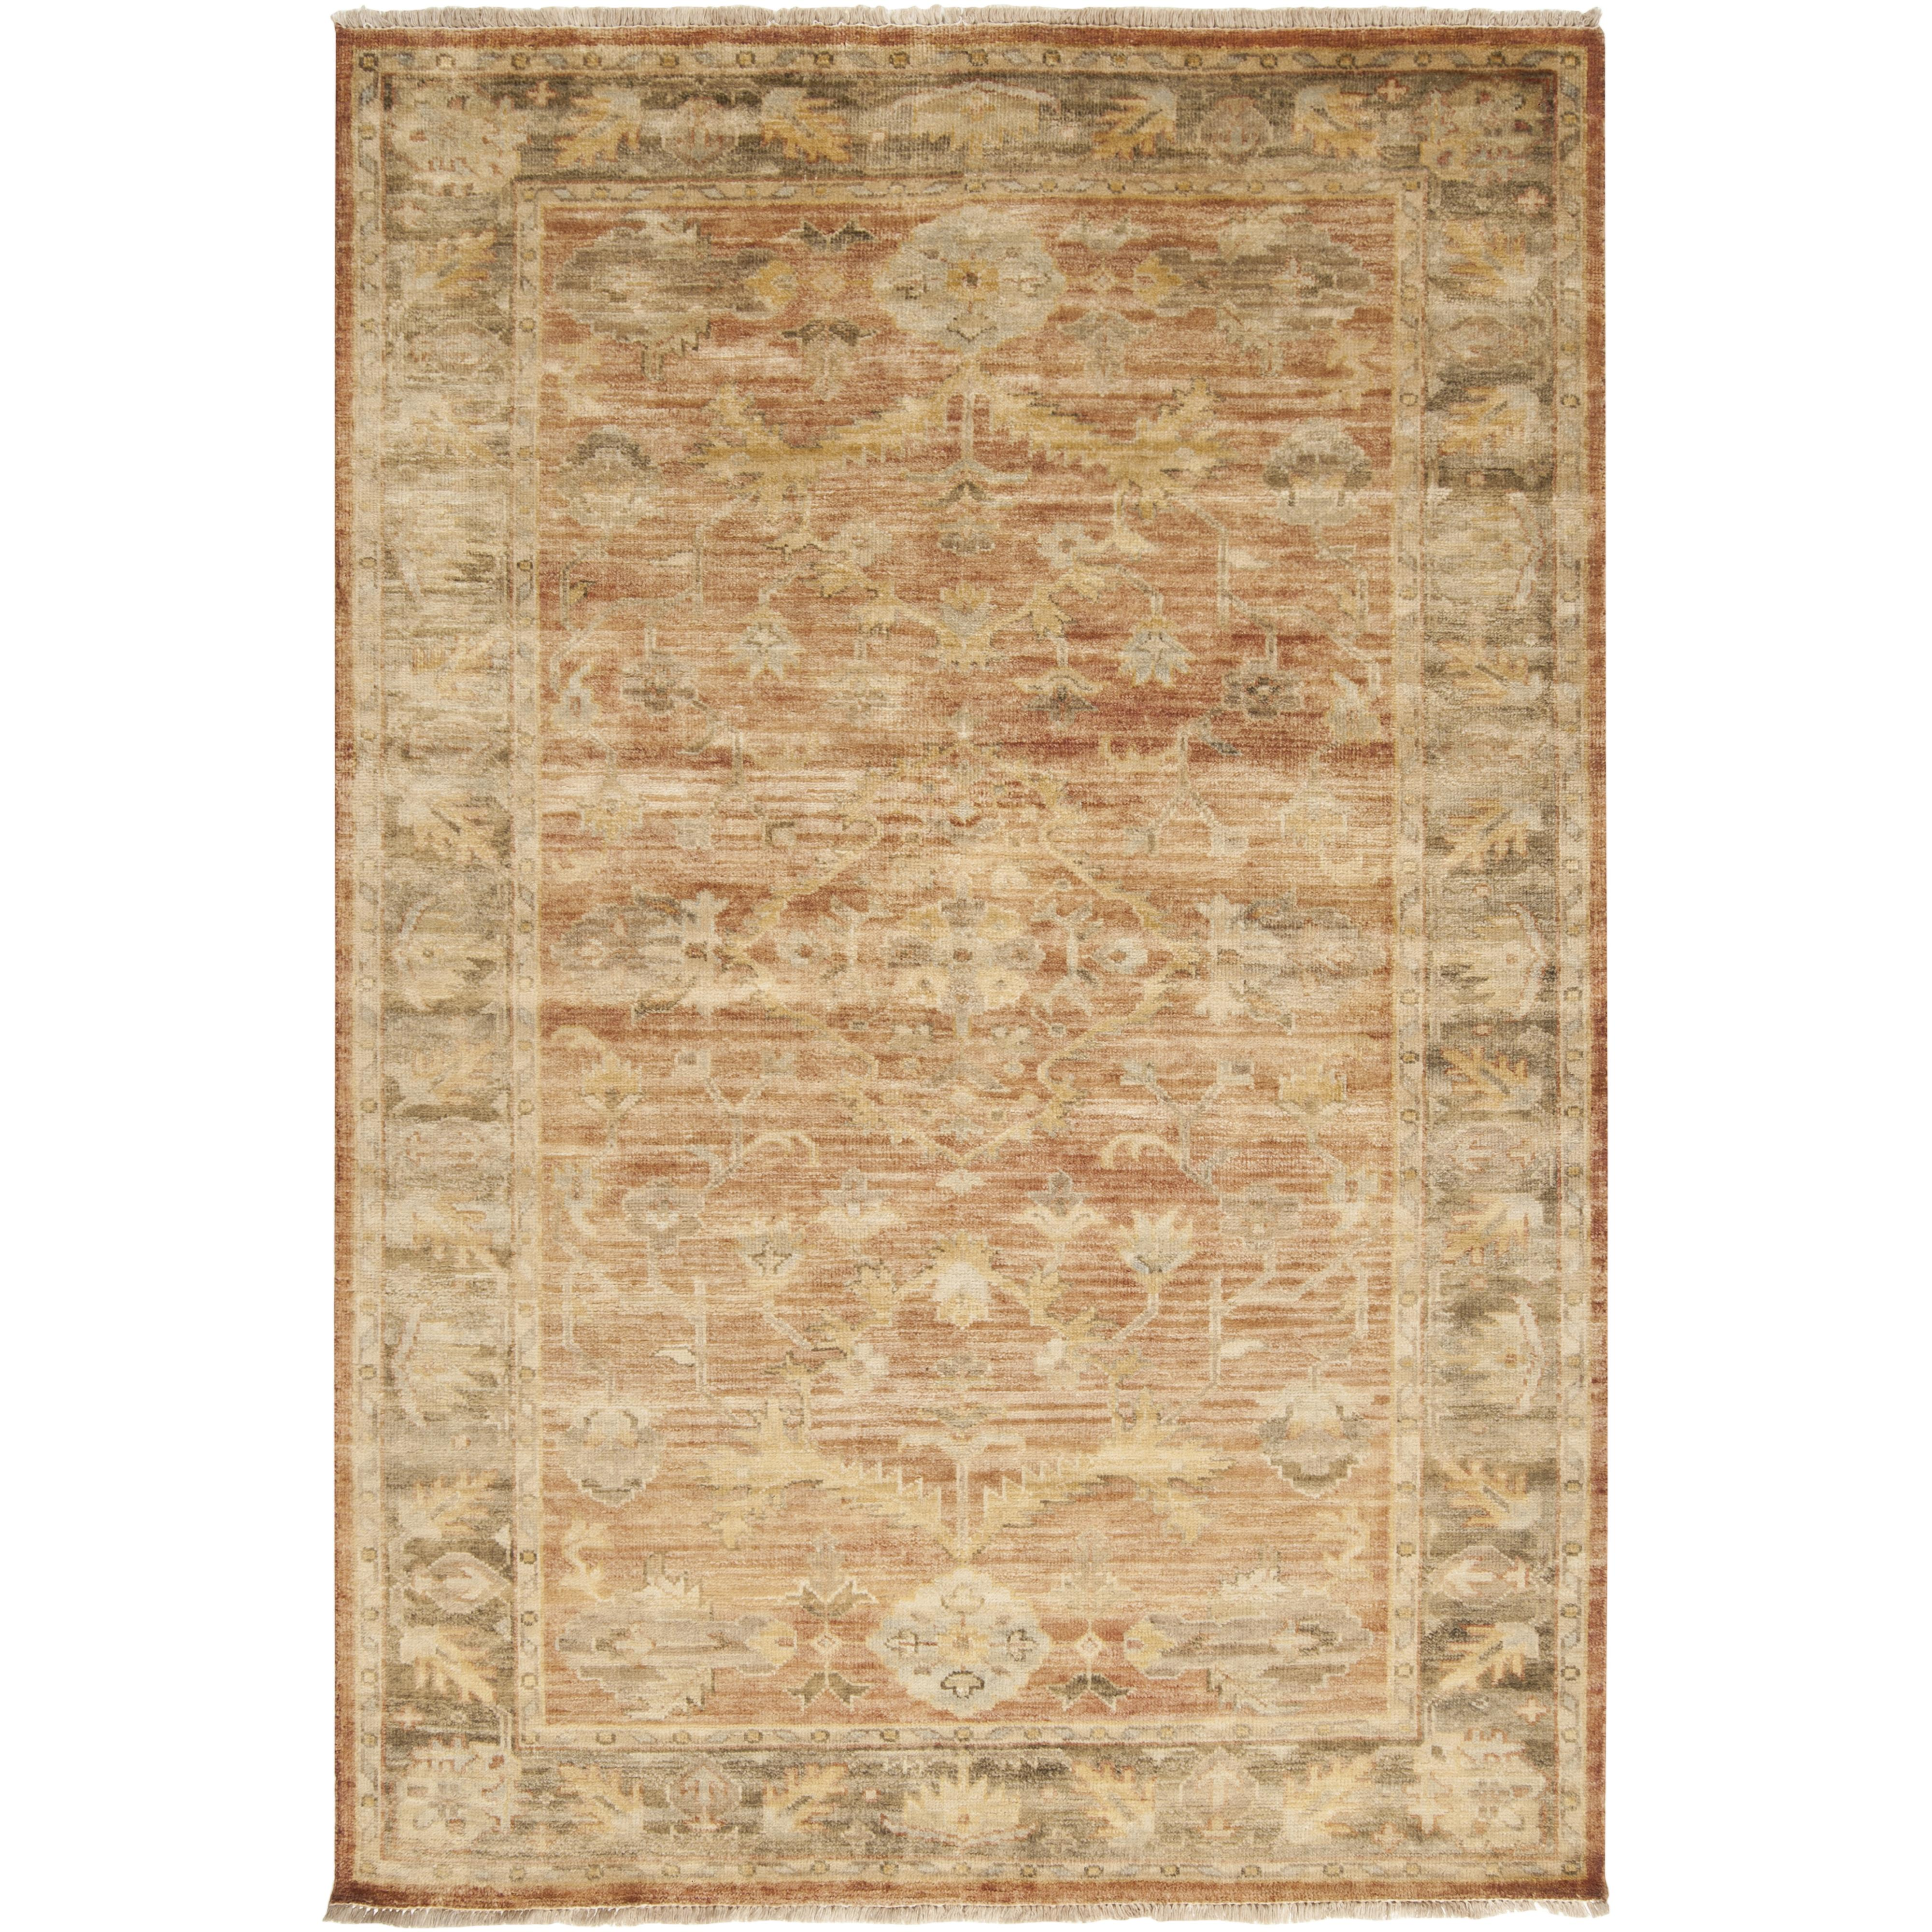 Surya Rugs Hillcrest 9' x 13' - Item Number: HIL9009-913